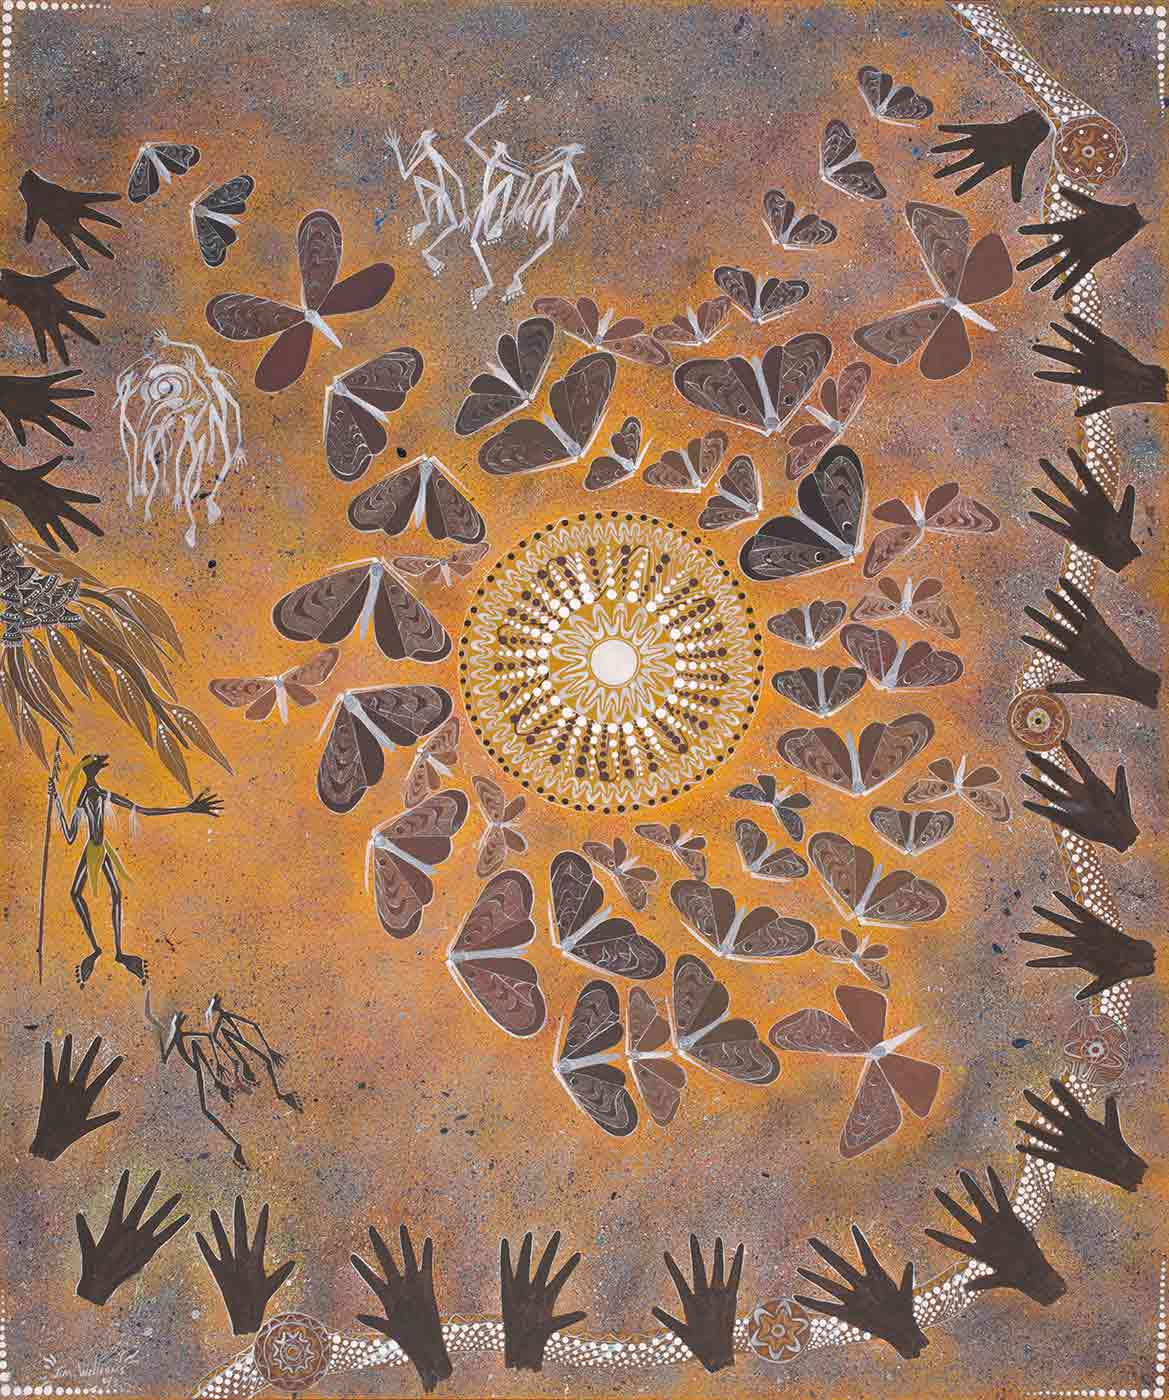 A painting on canvas containing a number of motifs including moths, human figures and hand stencils. - click to view larger image